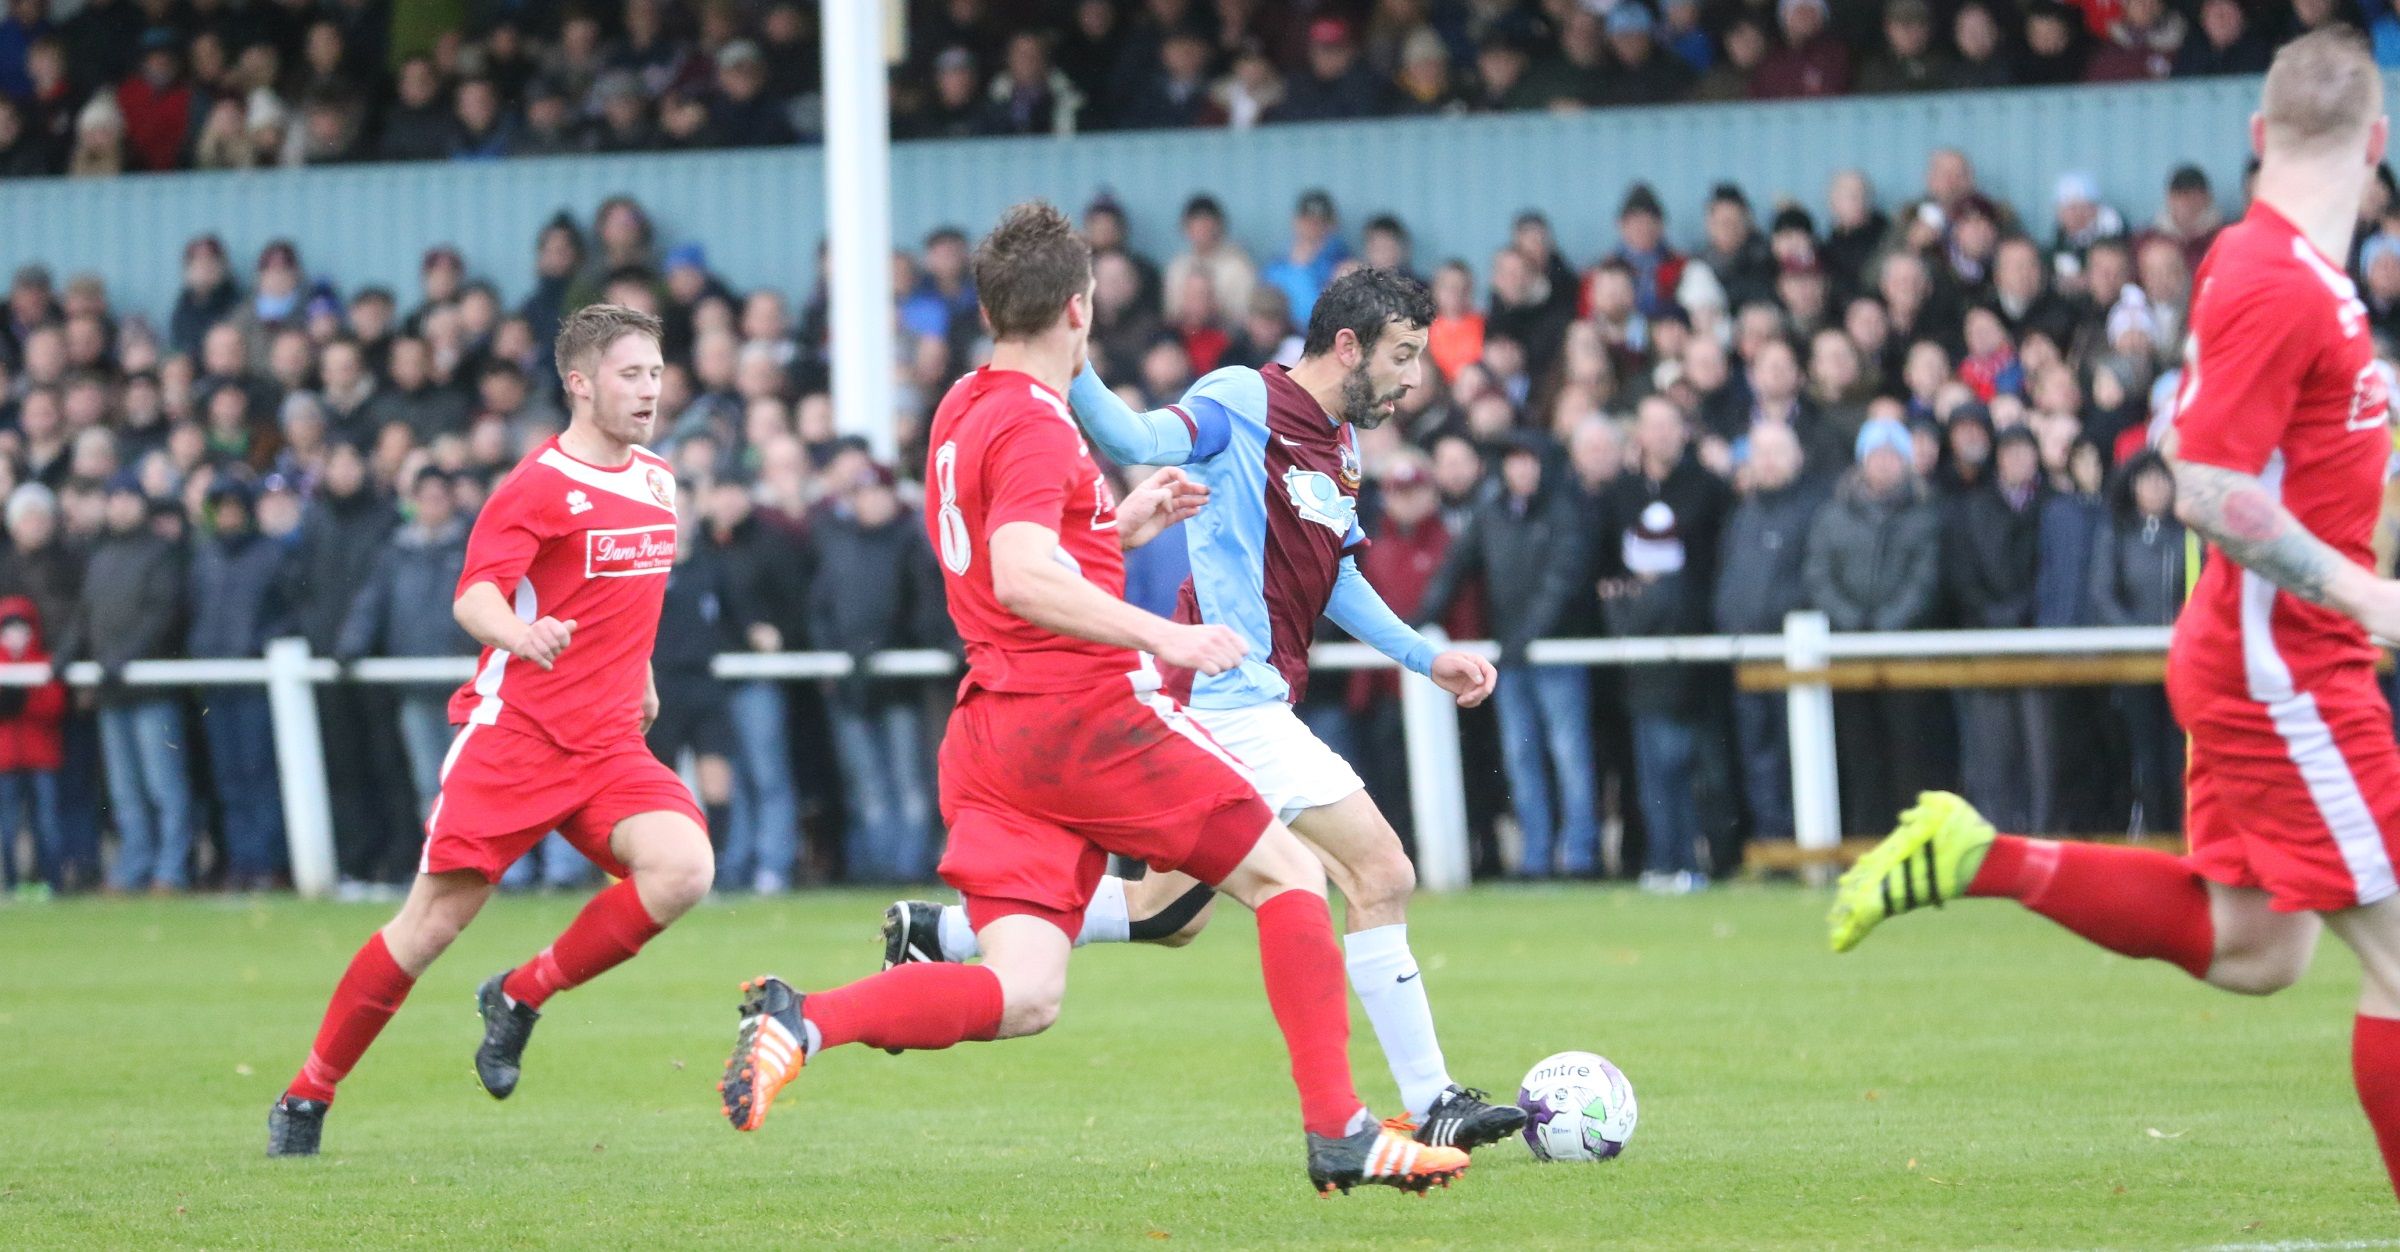 South Shields 0-1 North Shields: Mariners hit by late sucker punch